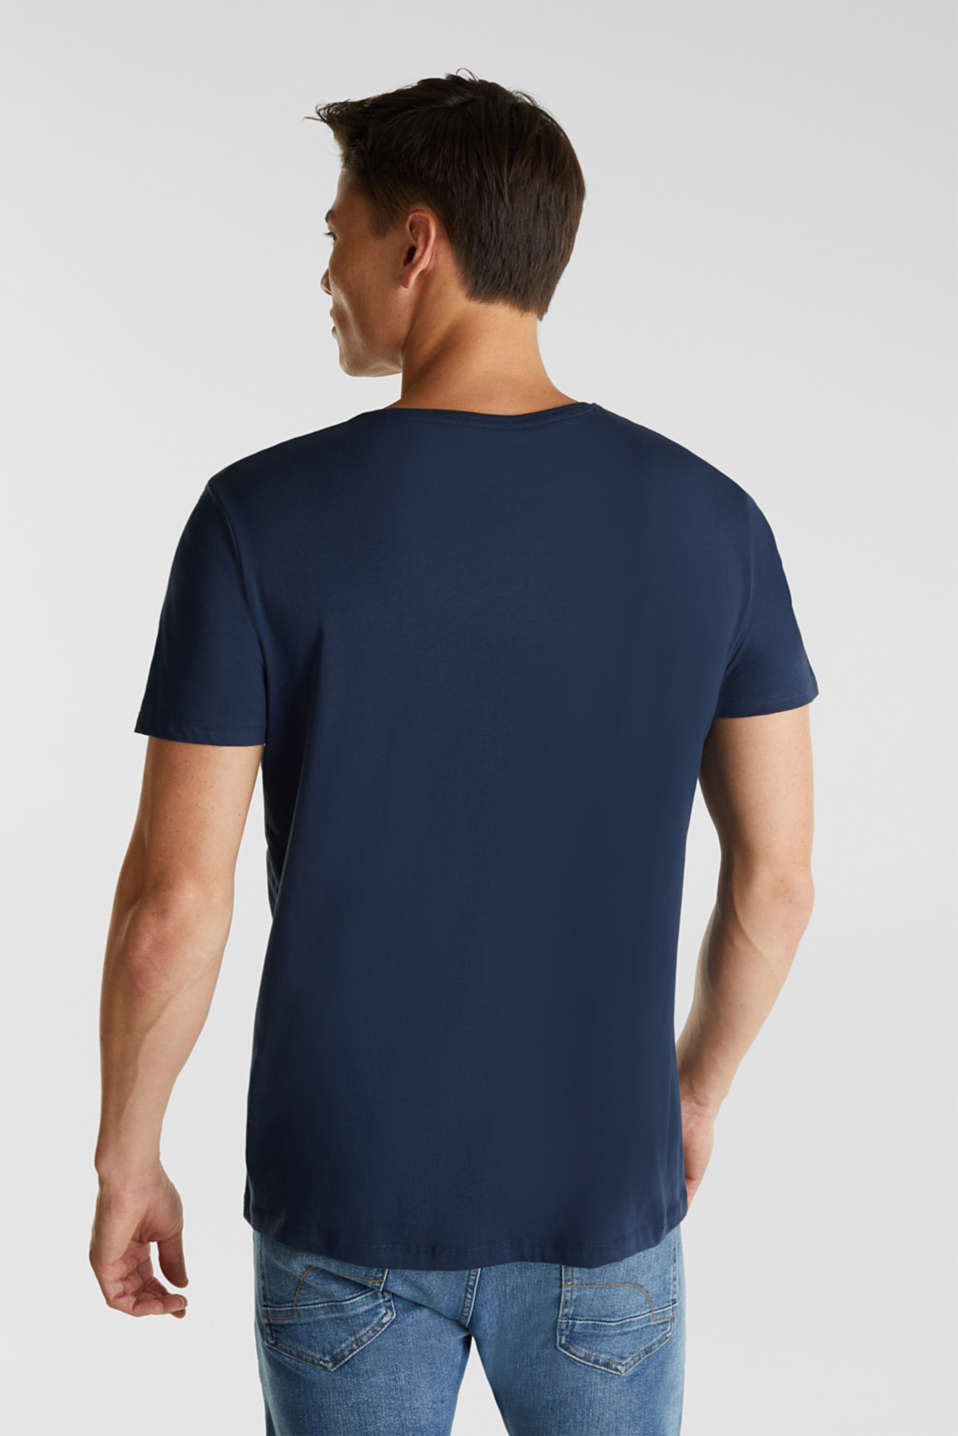 Jersey T-shirt with a print, 100% cotton, NAVY, detail image number 3